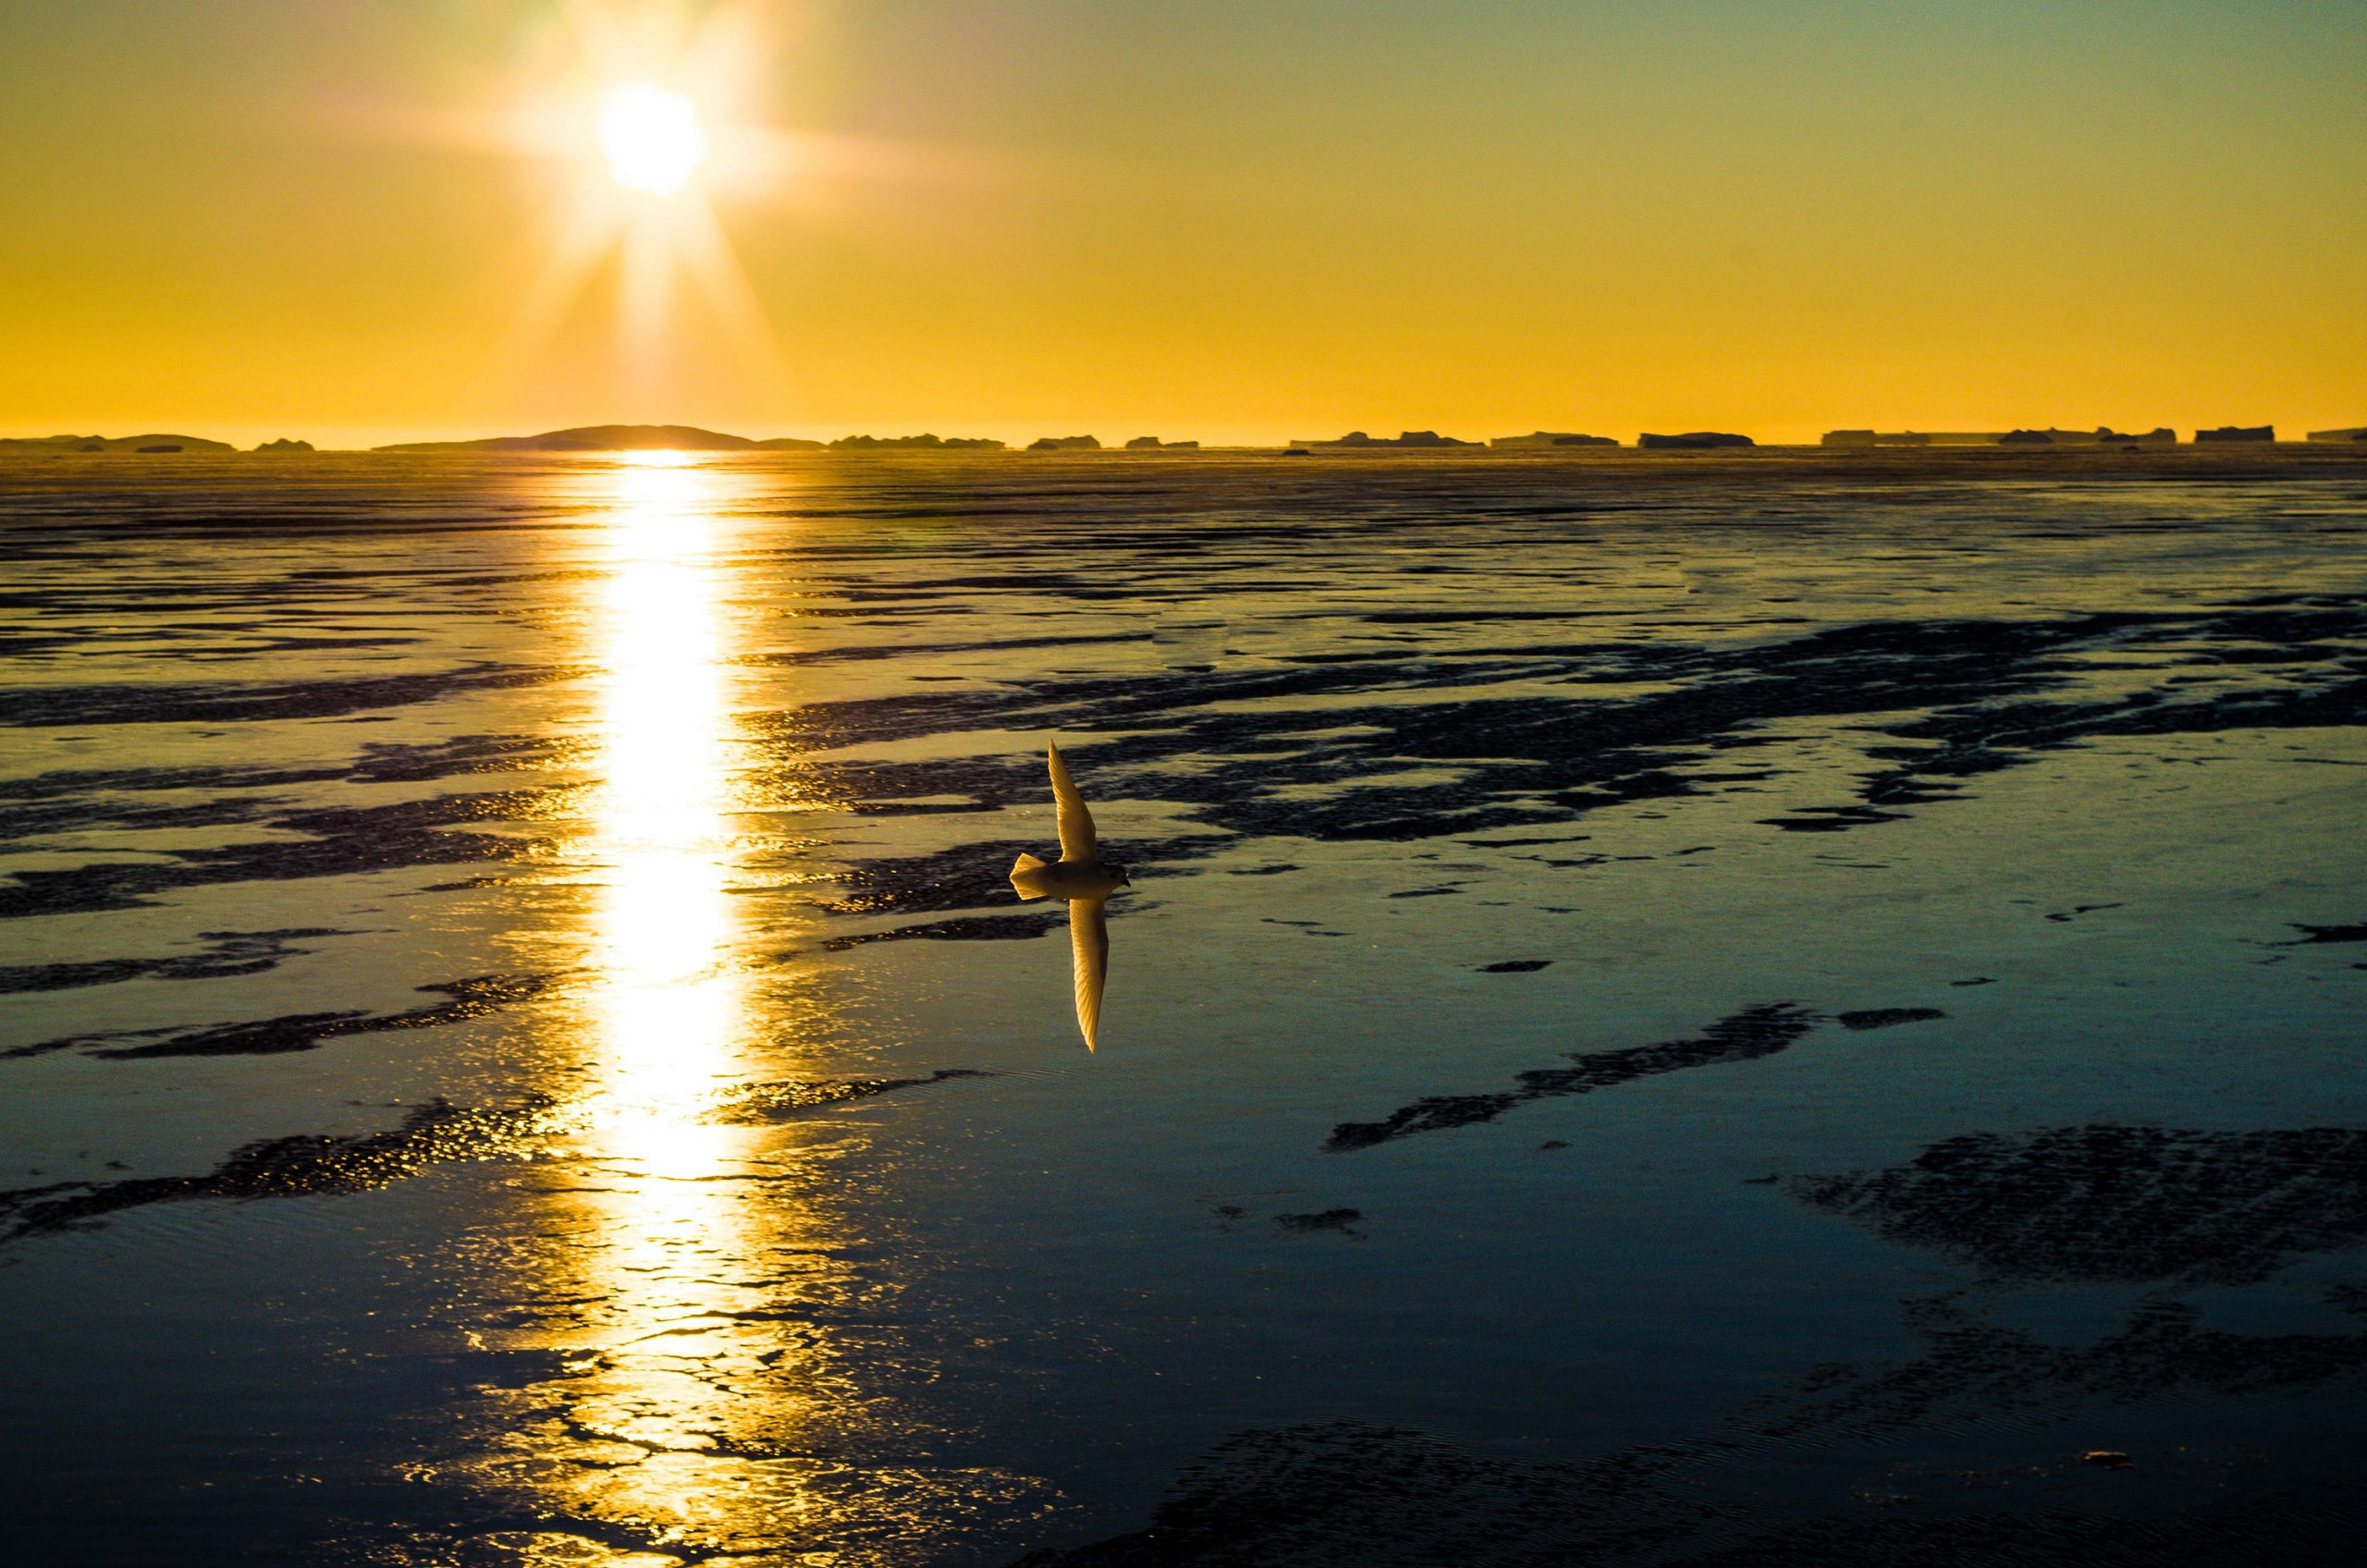 A low sun hangs over icy antarctic waters.